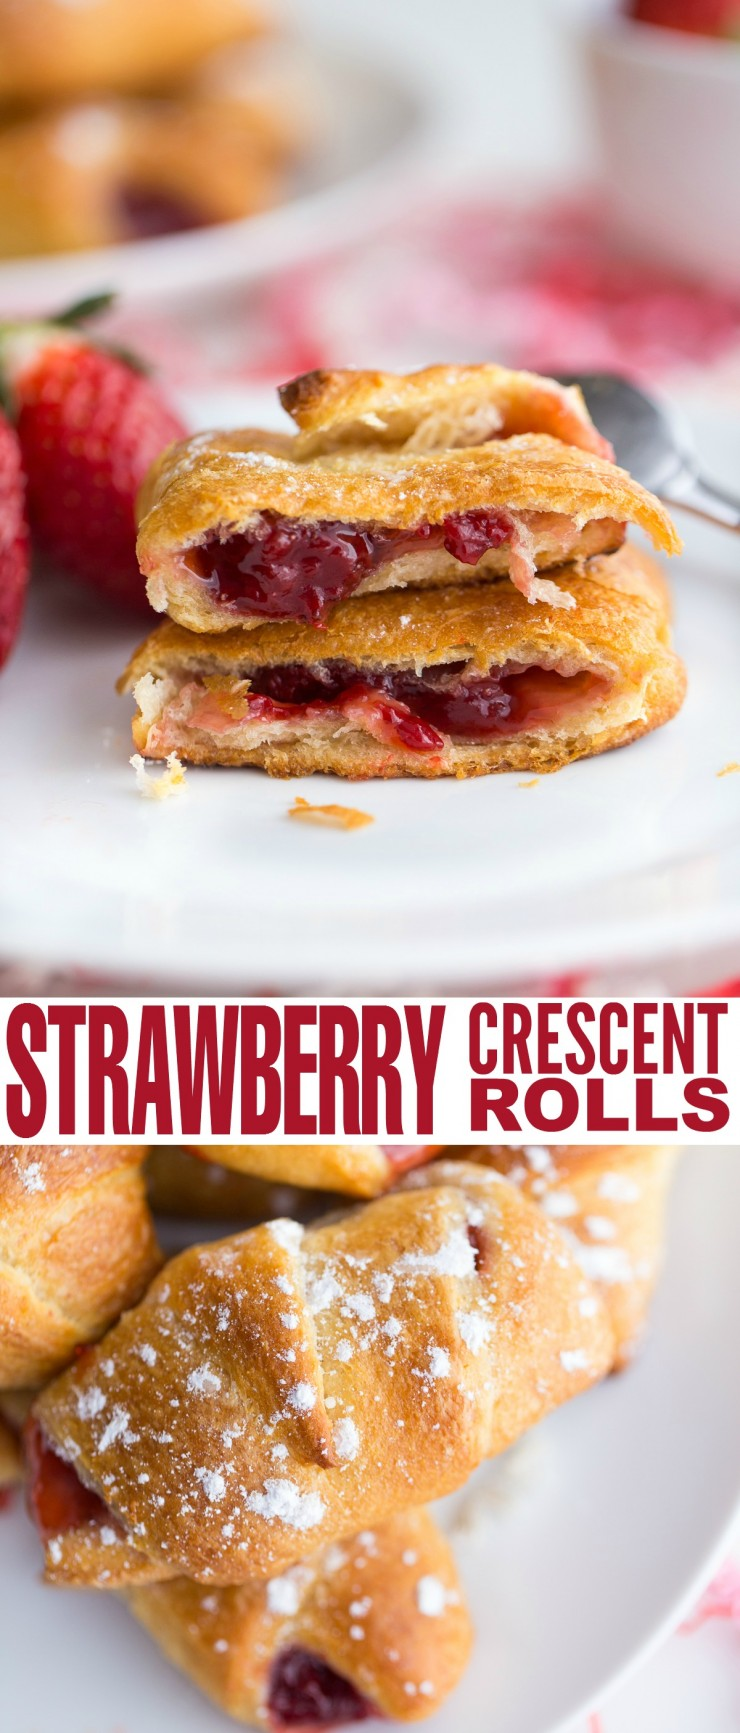 These strawberry crescent rolls are an easy dessert that can be made quickly enough to satisfy a sweet tooth or to serve unexpected company.